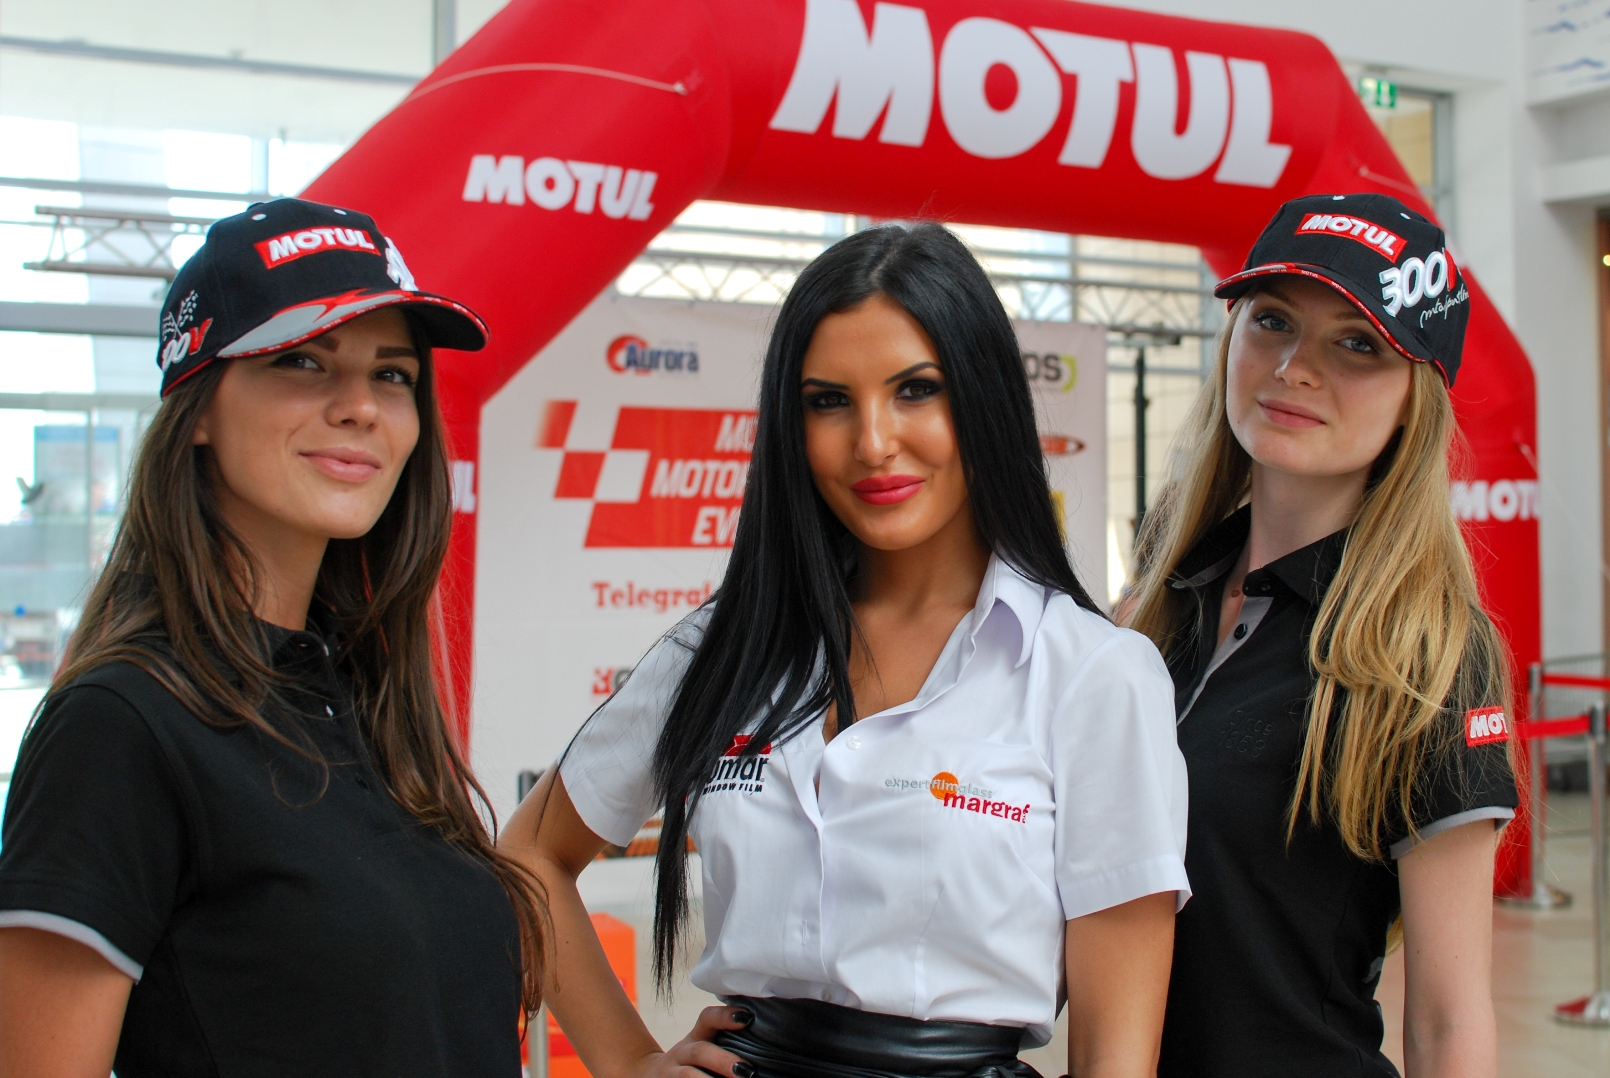 Hostess+Constanta-+Motul+2013+(7).JPG